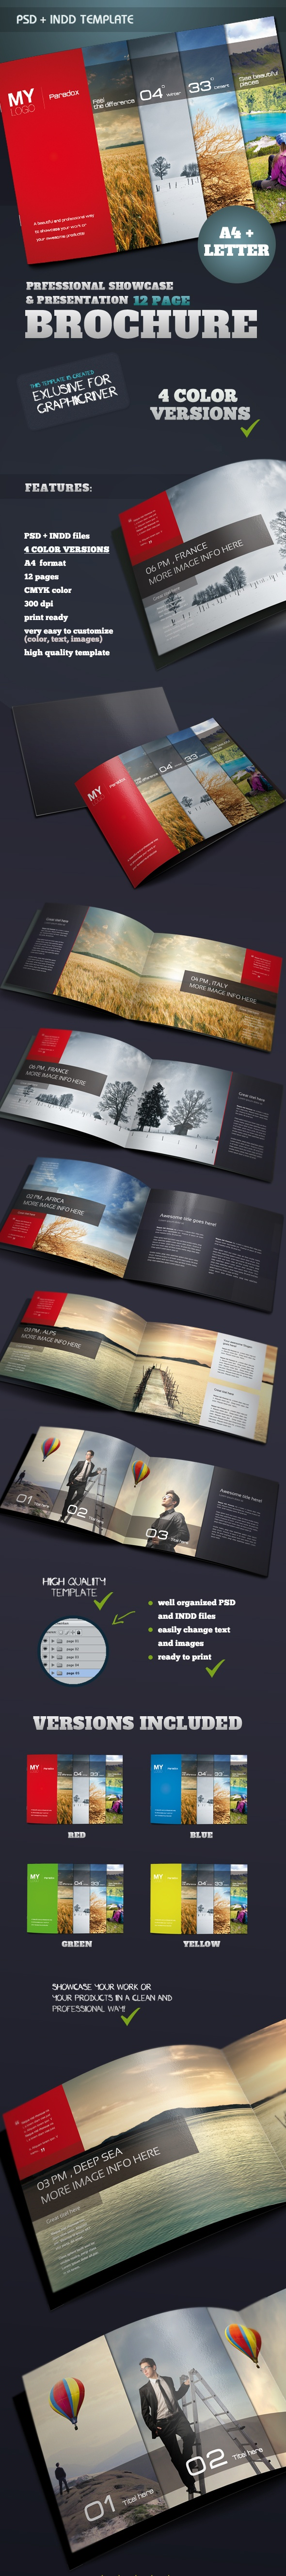 71 Best Art Images On Pinterest Chart Design Graph And Light Tent Shed Photo Cube Softbox With 4 Colored Background 80 X Portfolio Showcase Brochure By Pixxli Your Work Or Products In A Clean Professional Way This Is Complete Layout For Printable